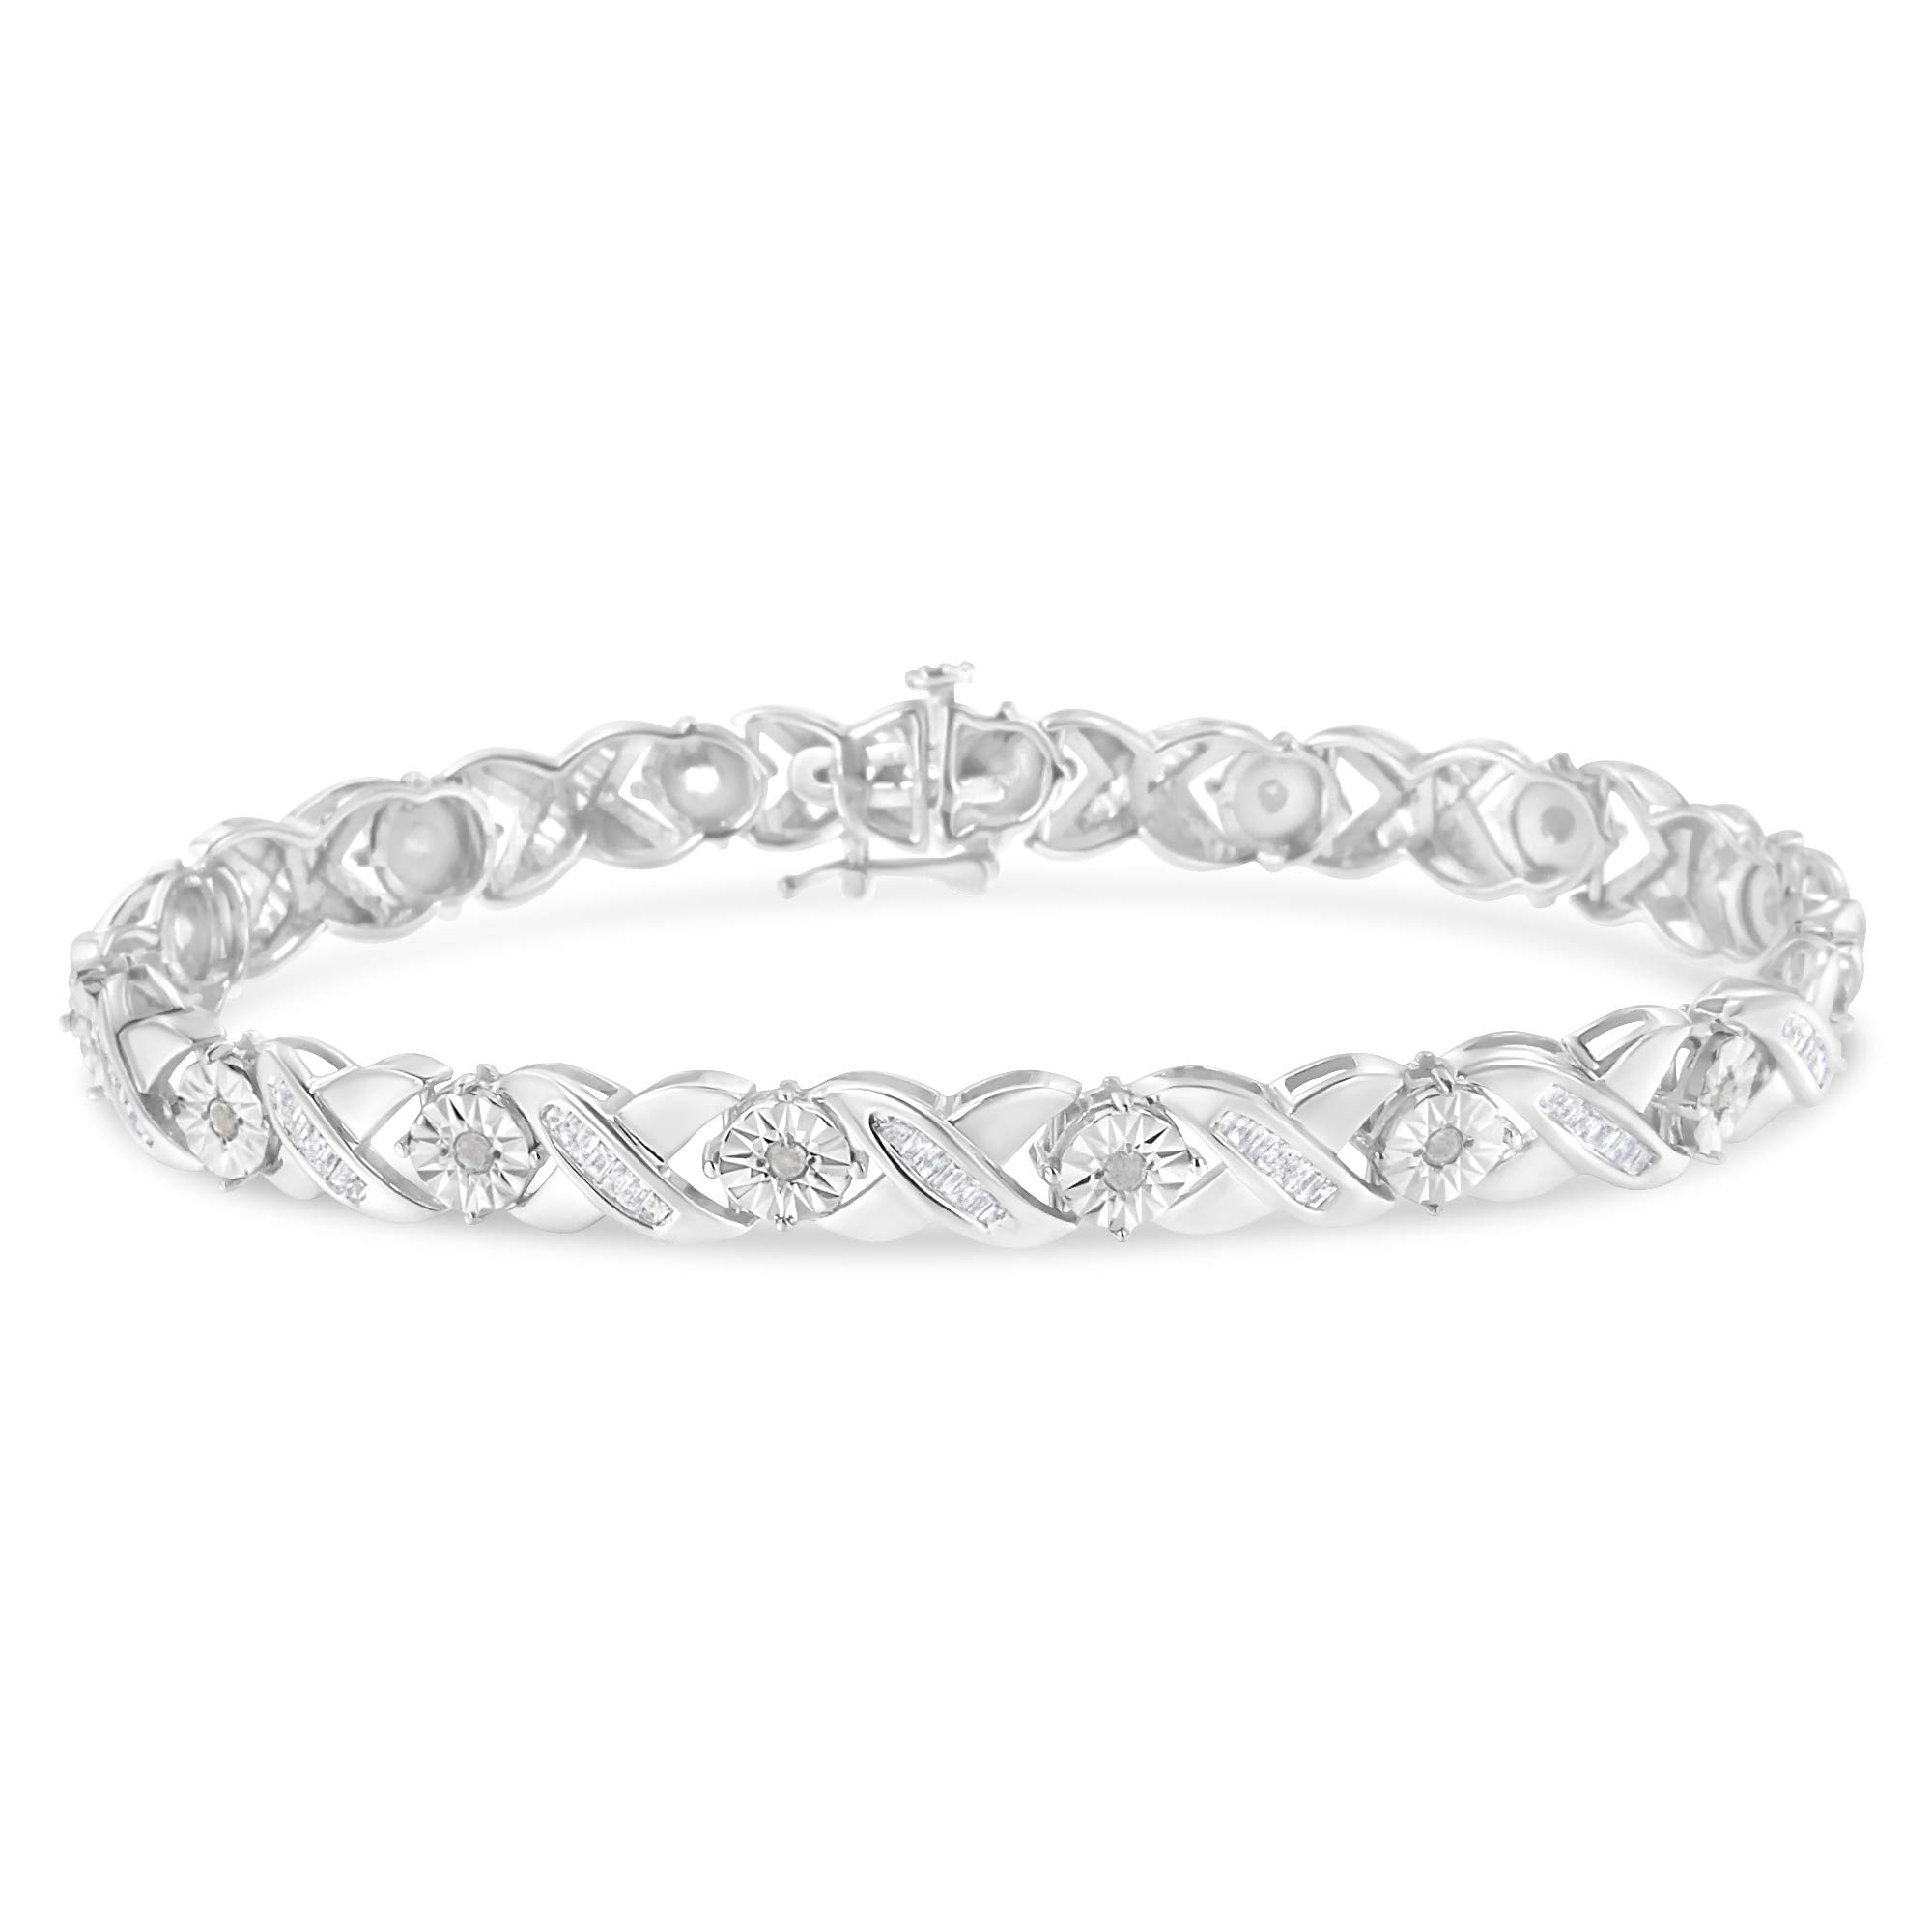 Sterling-Silver Diamond X-Link Bracelet (1.08 cttw, I-J Color, I2-I3 Clarity) by Original Classics